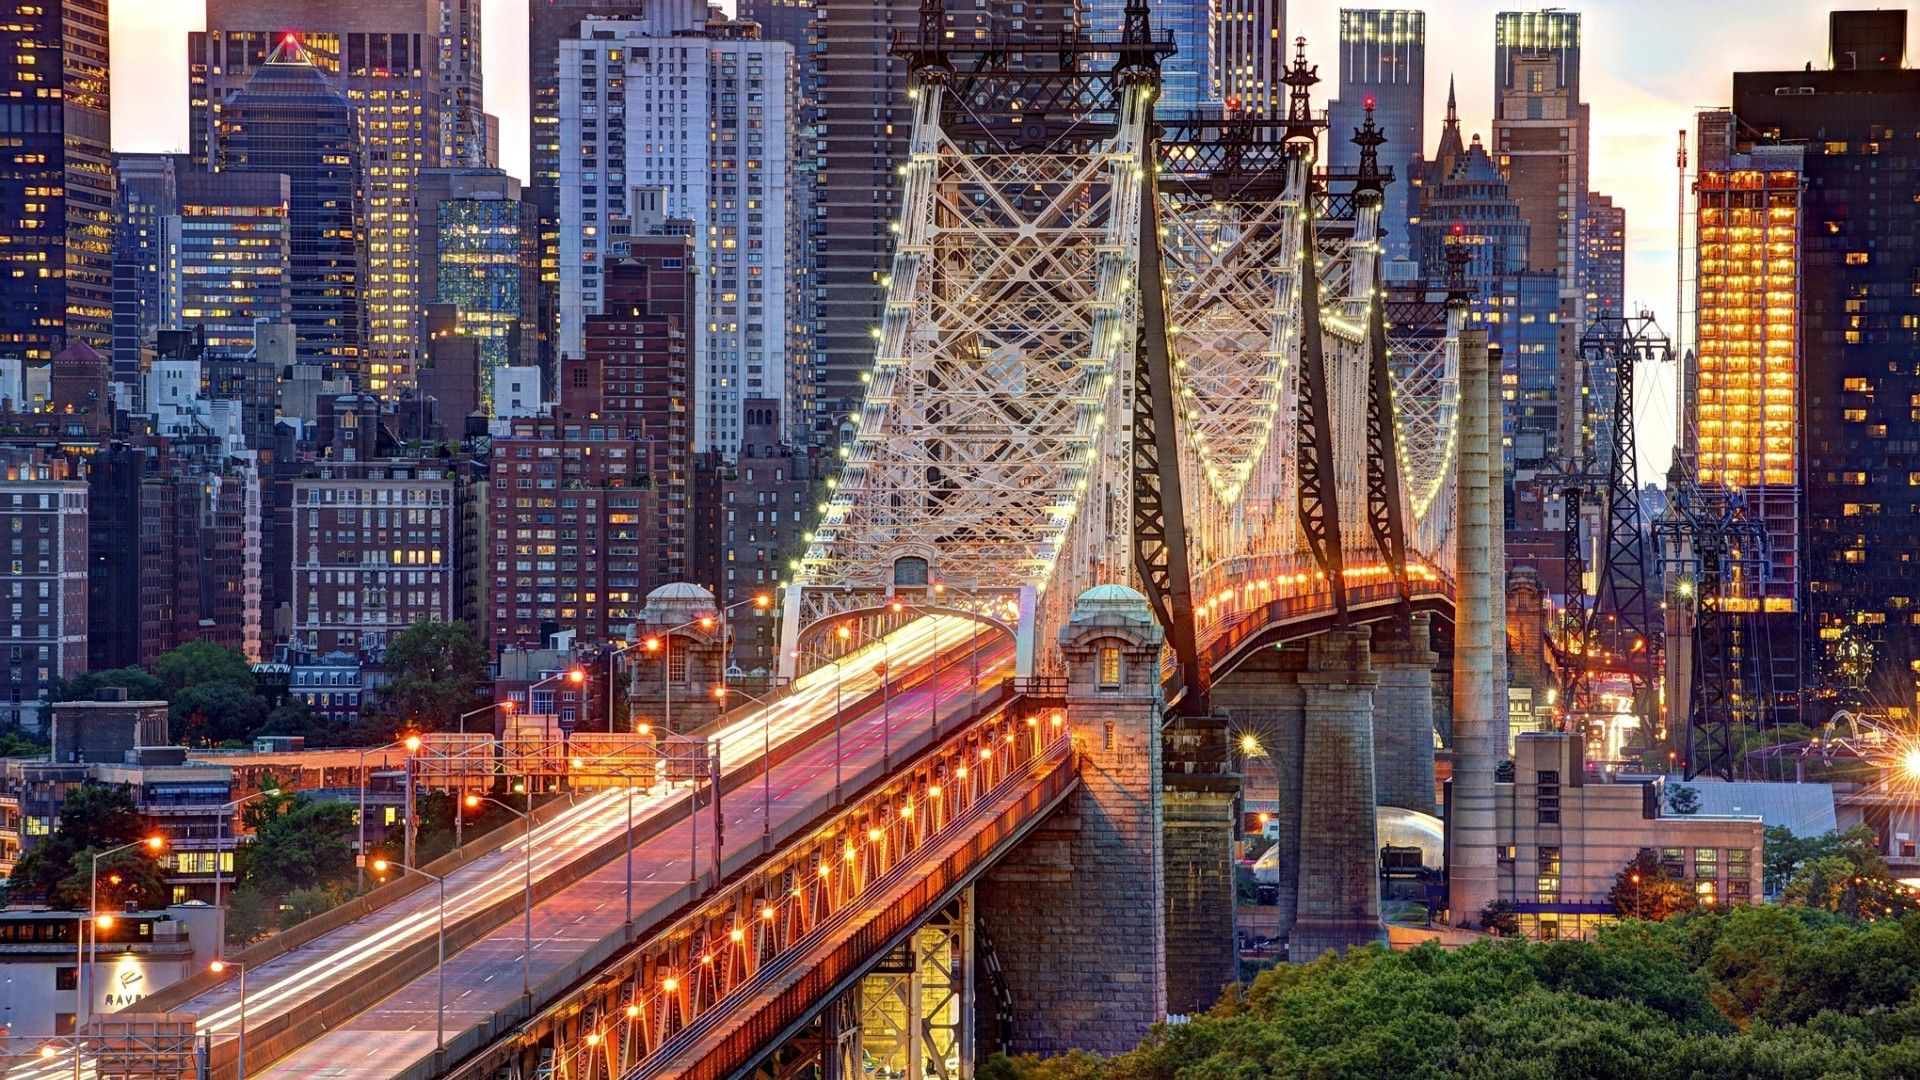 Evening View New York Beautiful Places Hd Wallpaper Widescreen